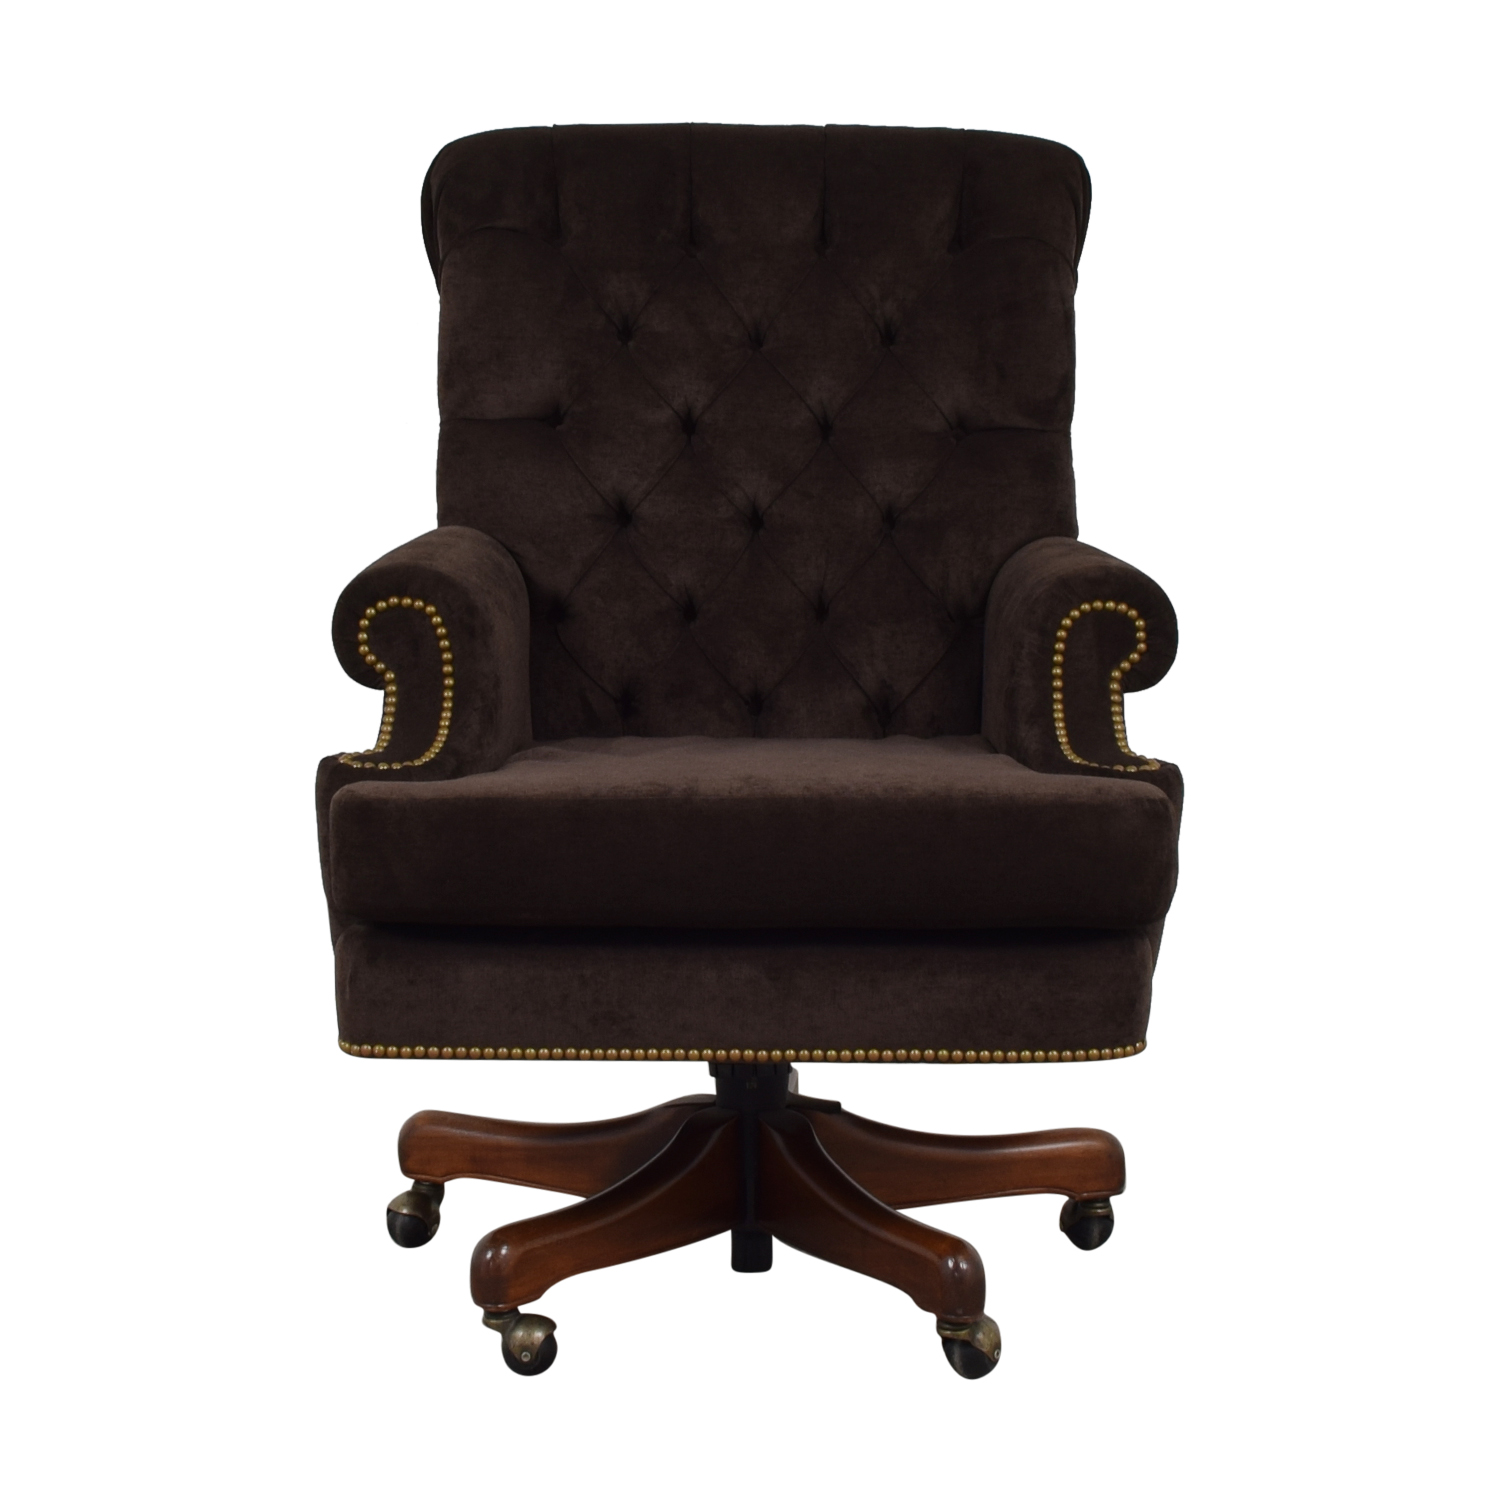 Furniture Masters Furniture Masters Brown Nailhead Tufted Desk Chair on Castors nyc